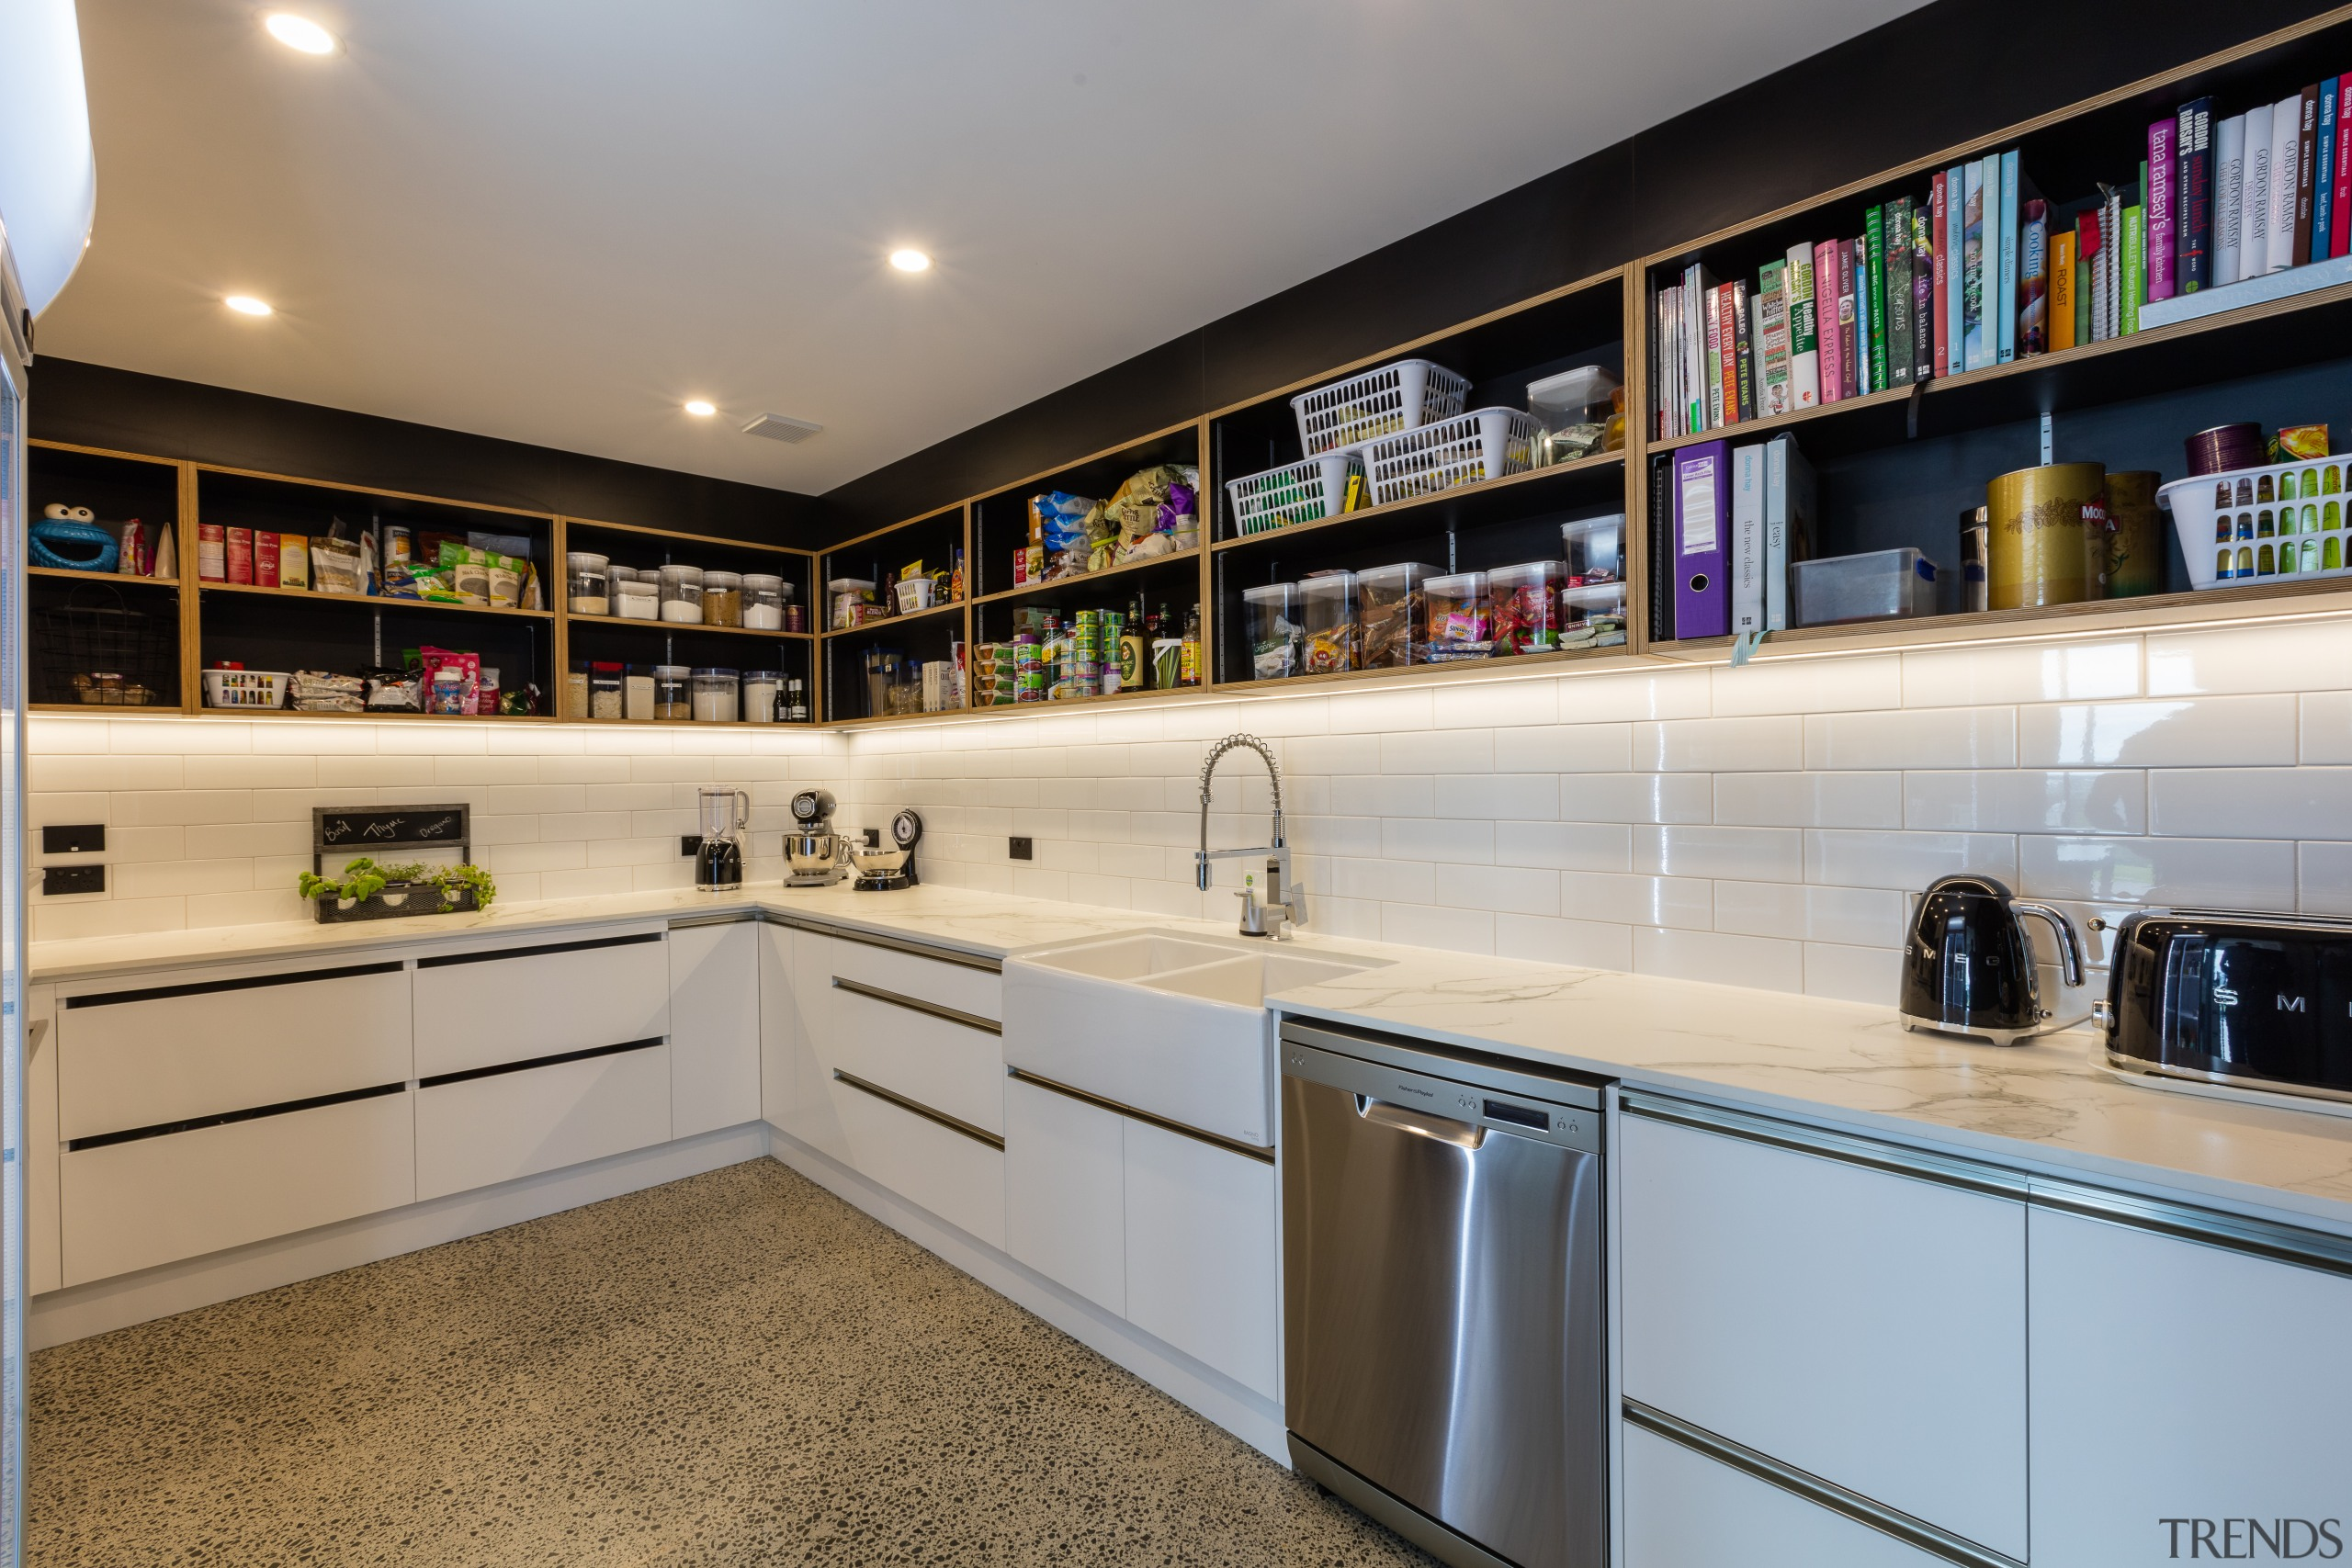 Open shelving makes for speedy access of contents cabinetry, countertop, interior design, kitchen, real estate, gray